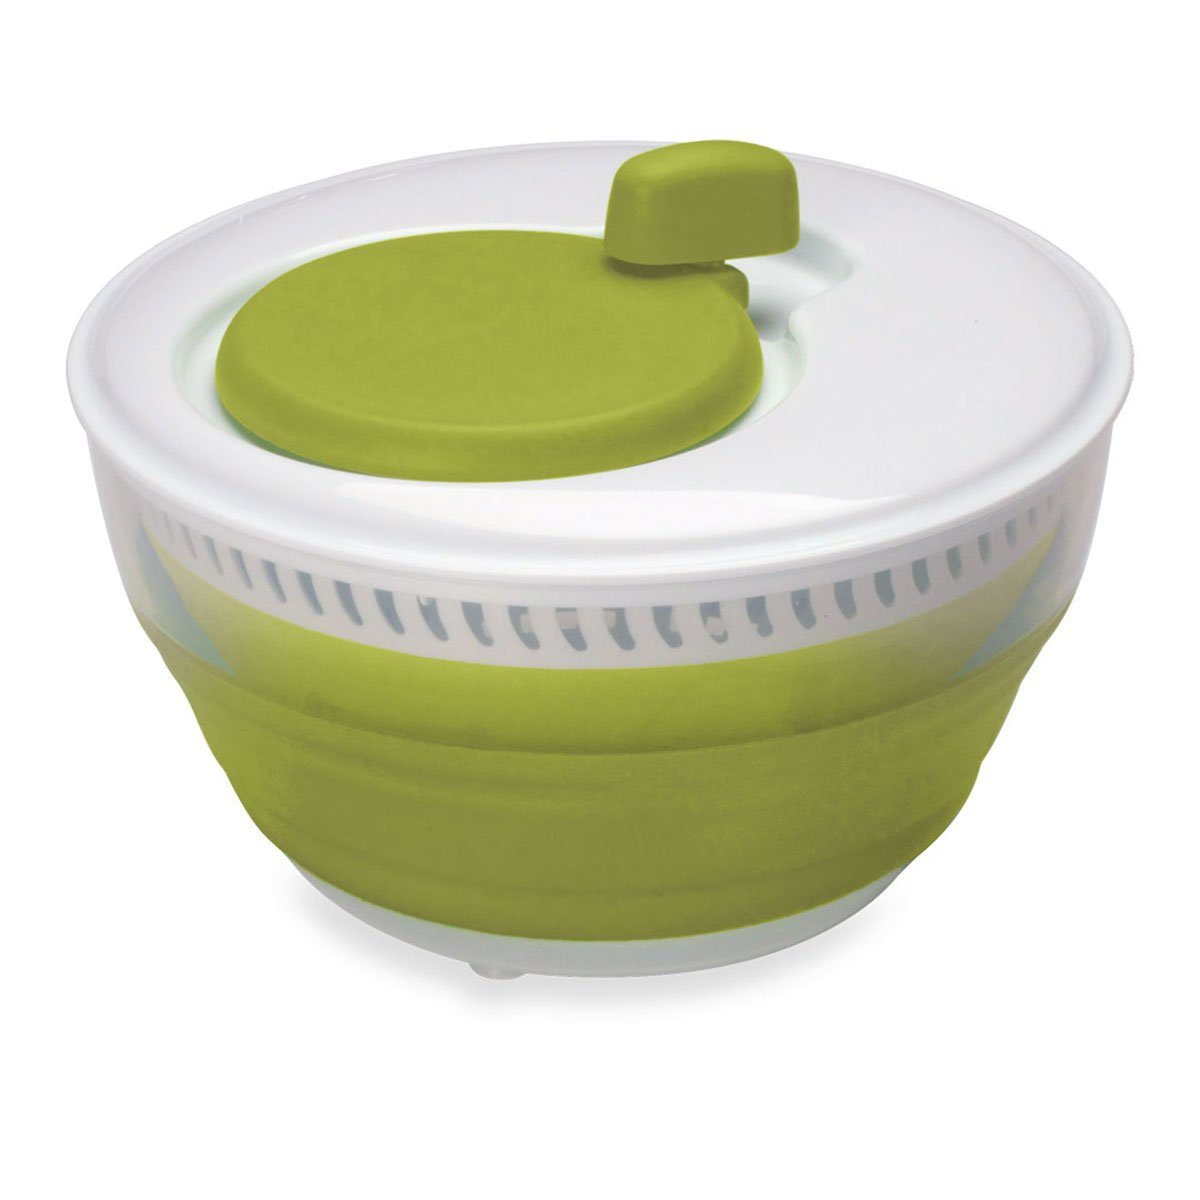 Starfrit 093147-003-0000 Starfrit 093147 Collapsible Salad Spinner, 3L Capacity, Green